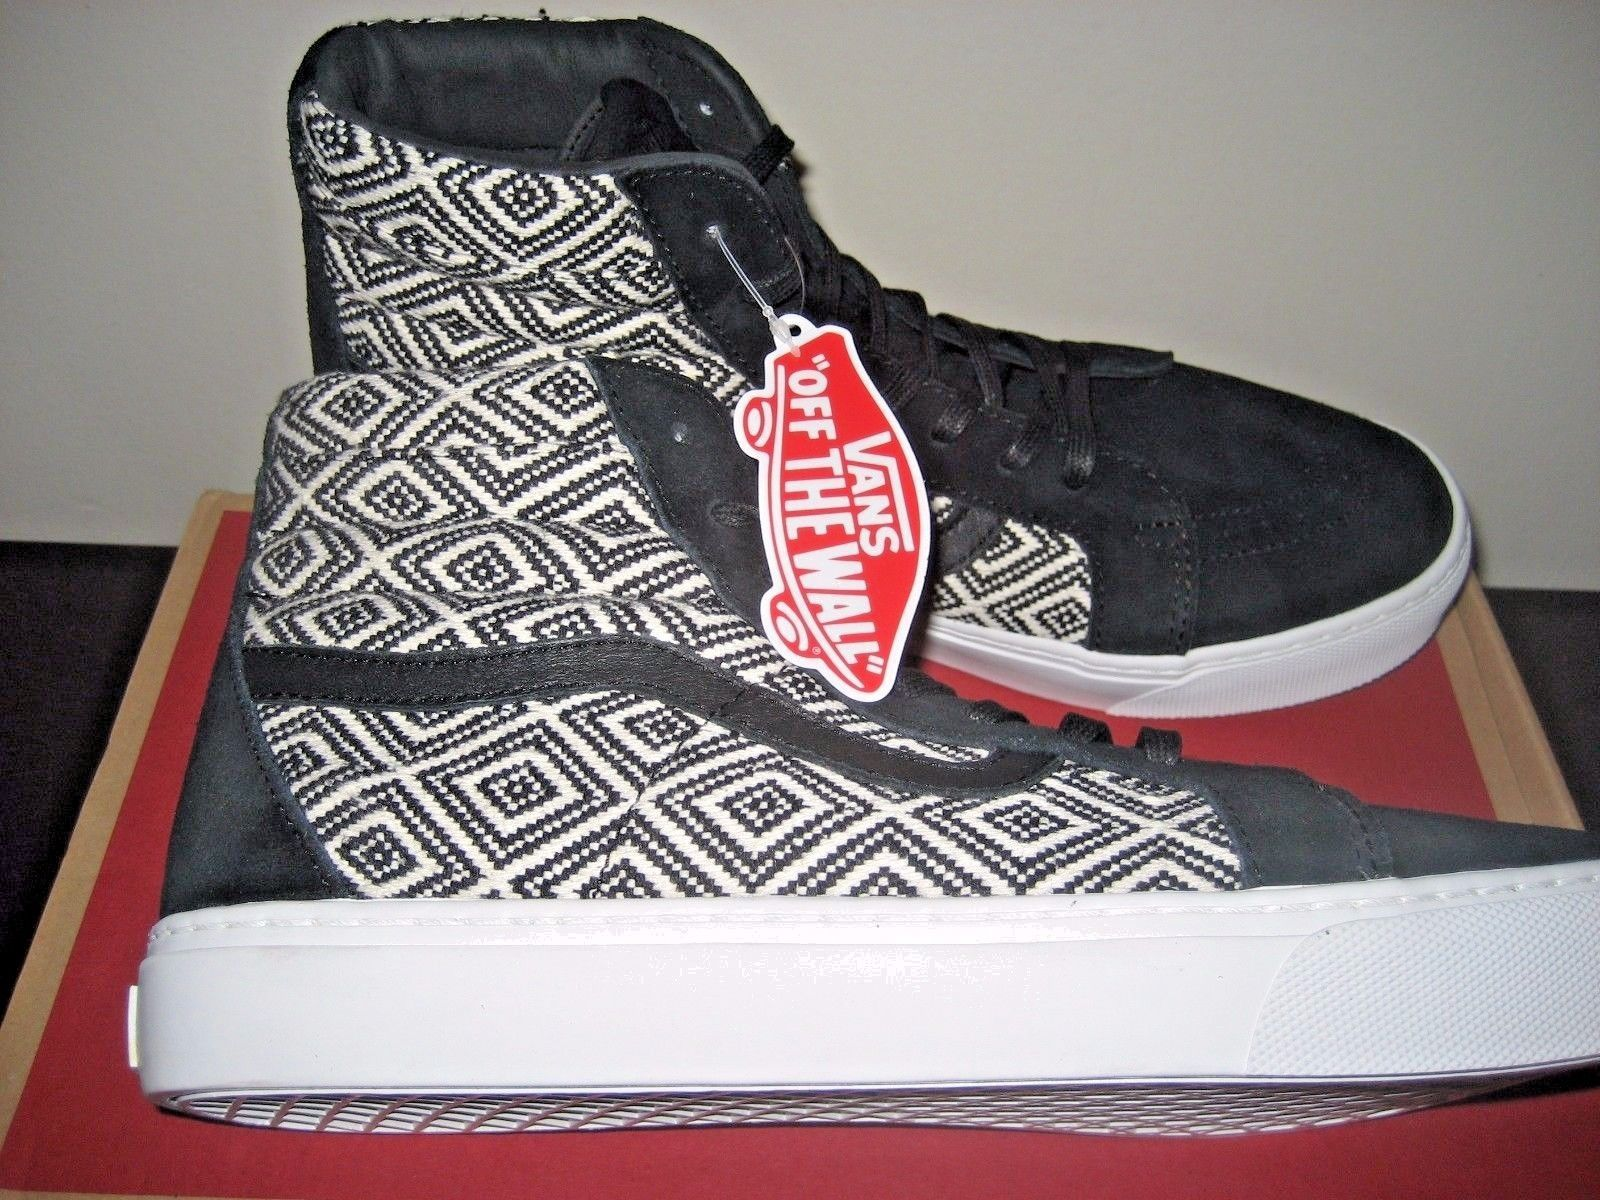 0ba0074175af95 Vans Sk8-Hi Cup + Mens Textile Black Skate and 29 similar items. 57